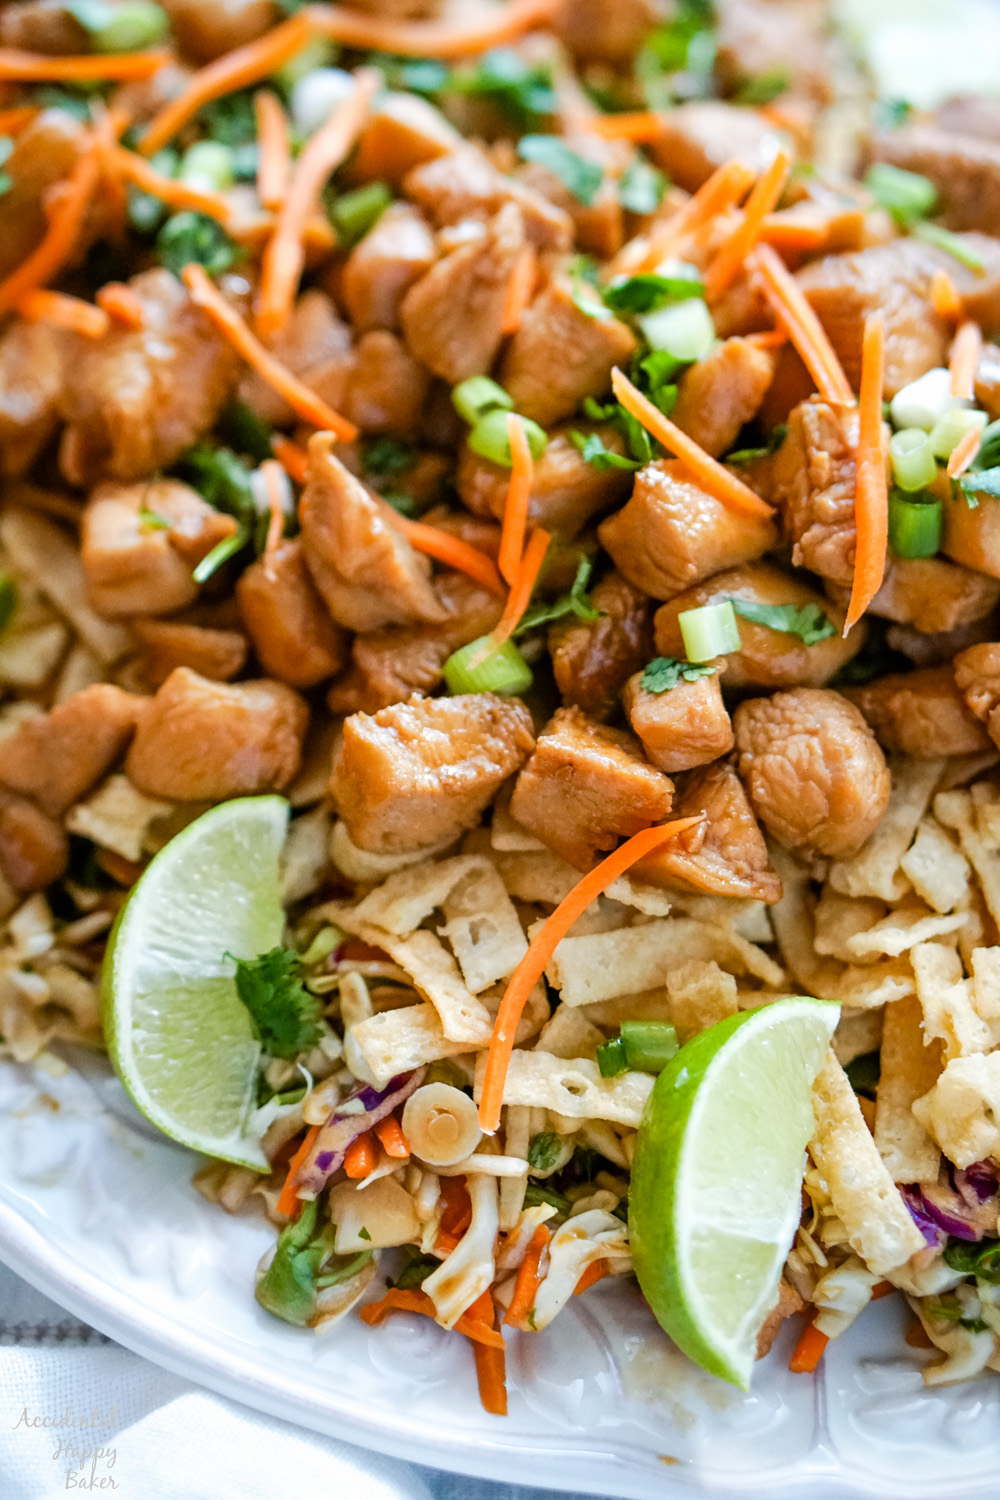 A close up image that shows the components of the finished Wonton Chicken Taco Salad.